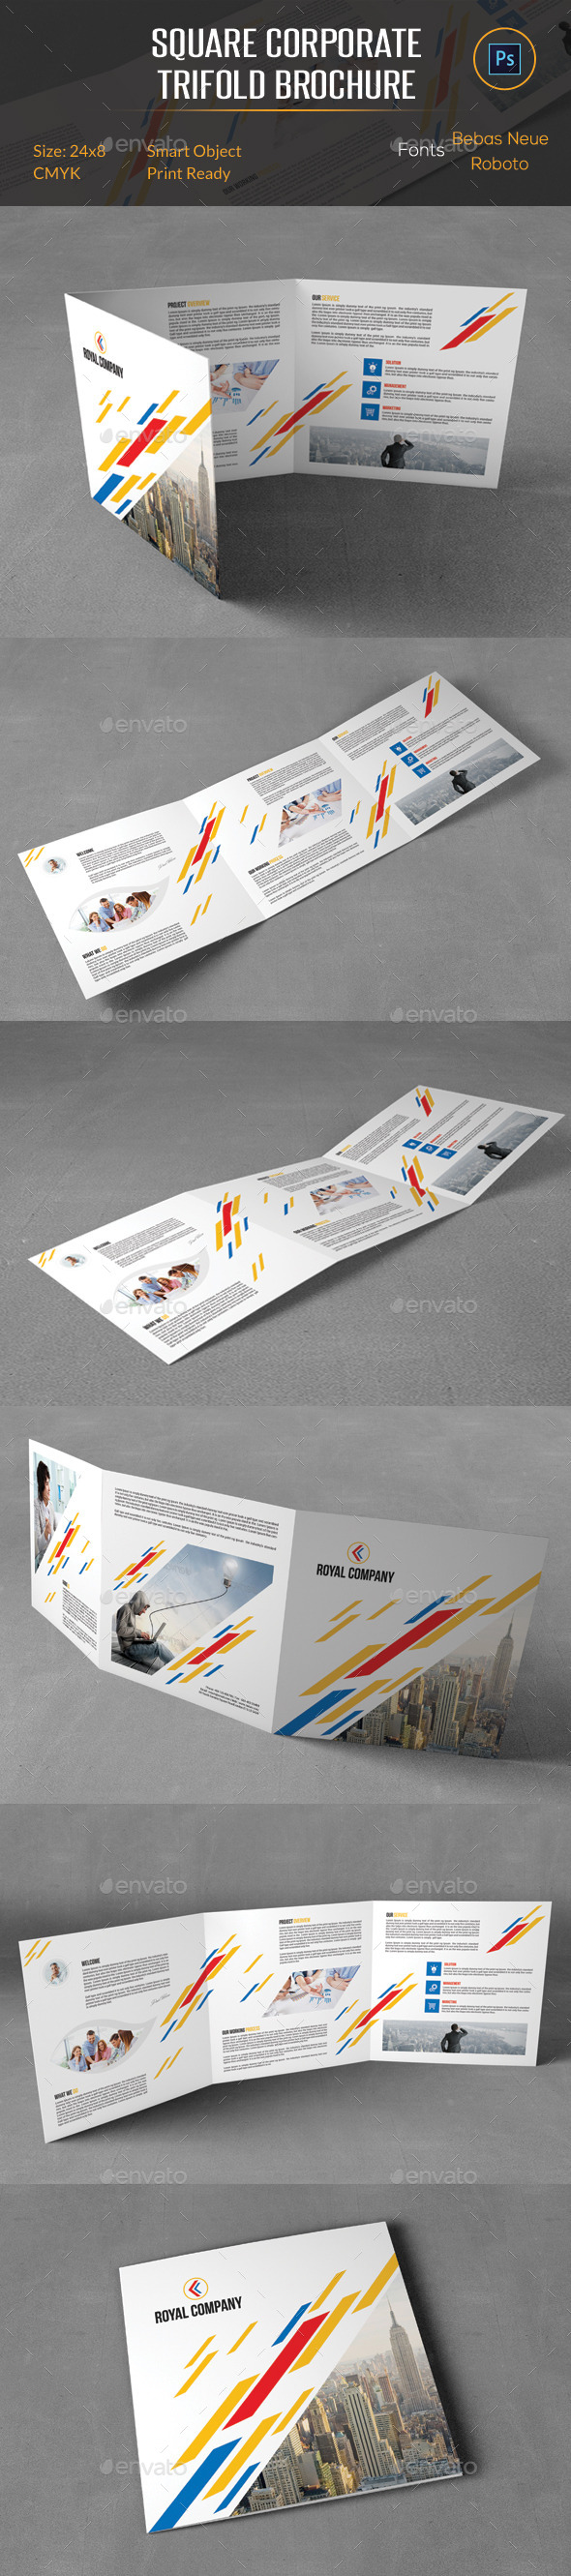 GraphicRiver Square Corporate Trifold Brochure 10618427